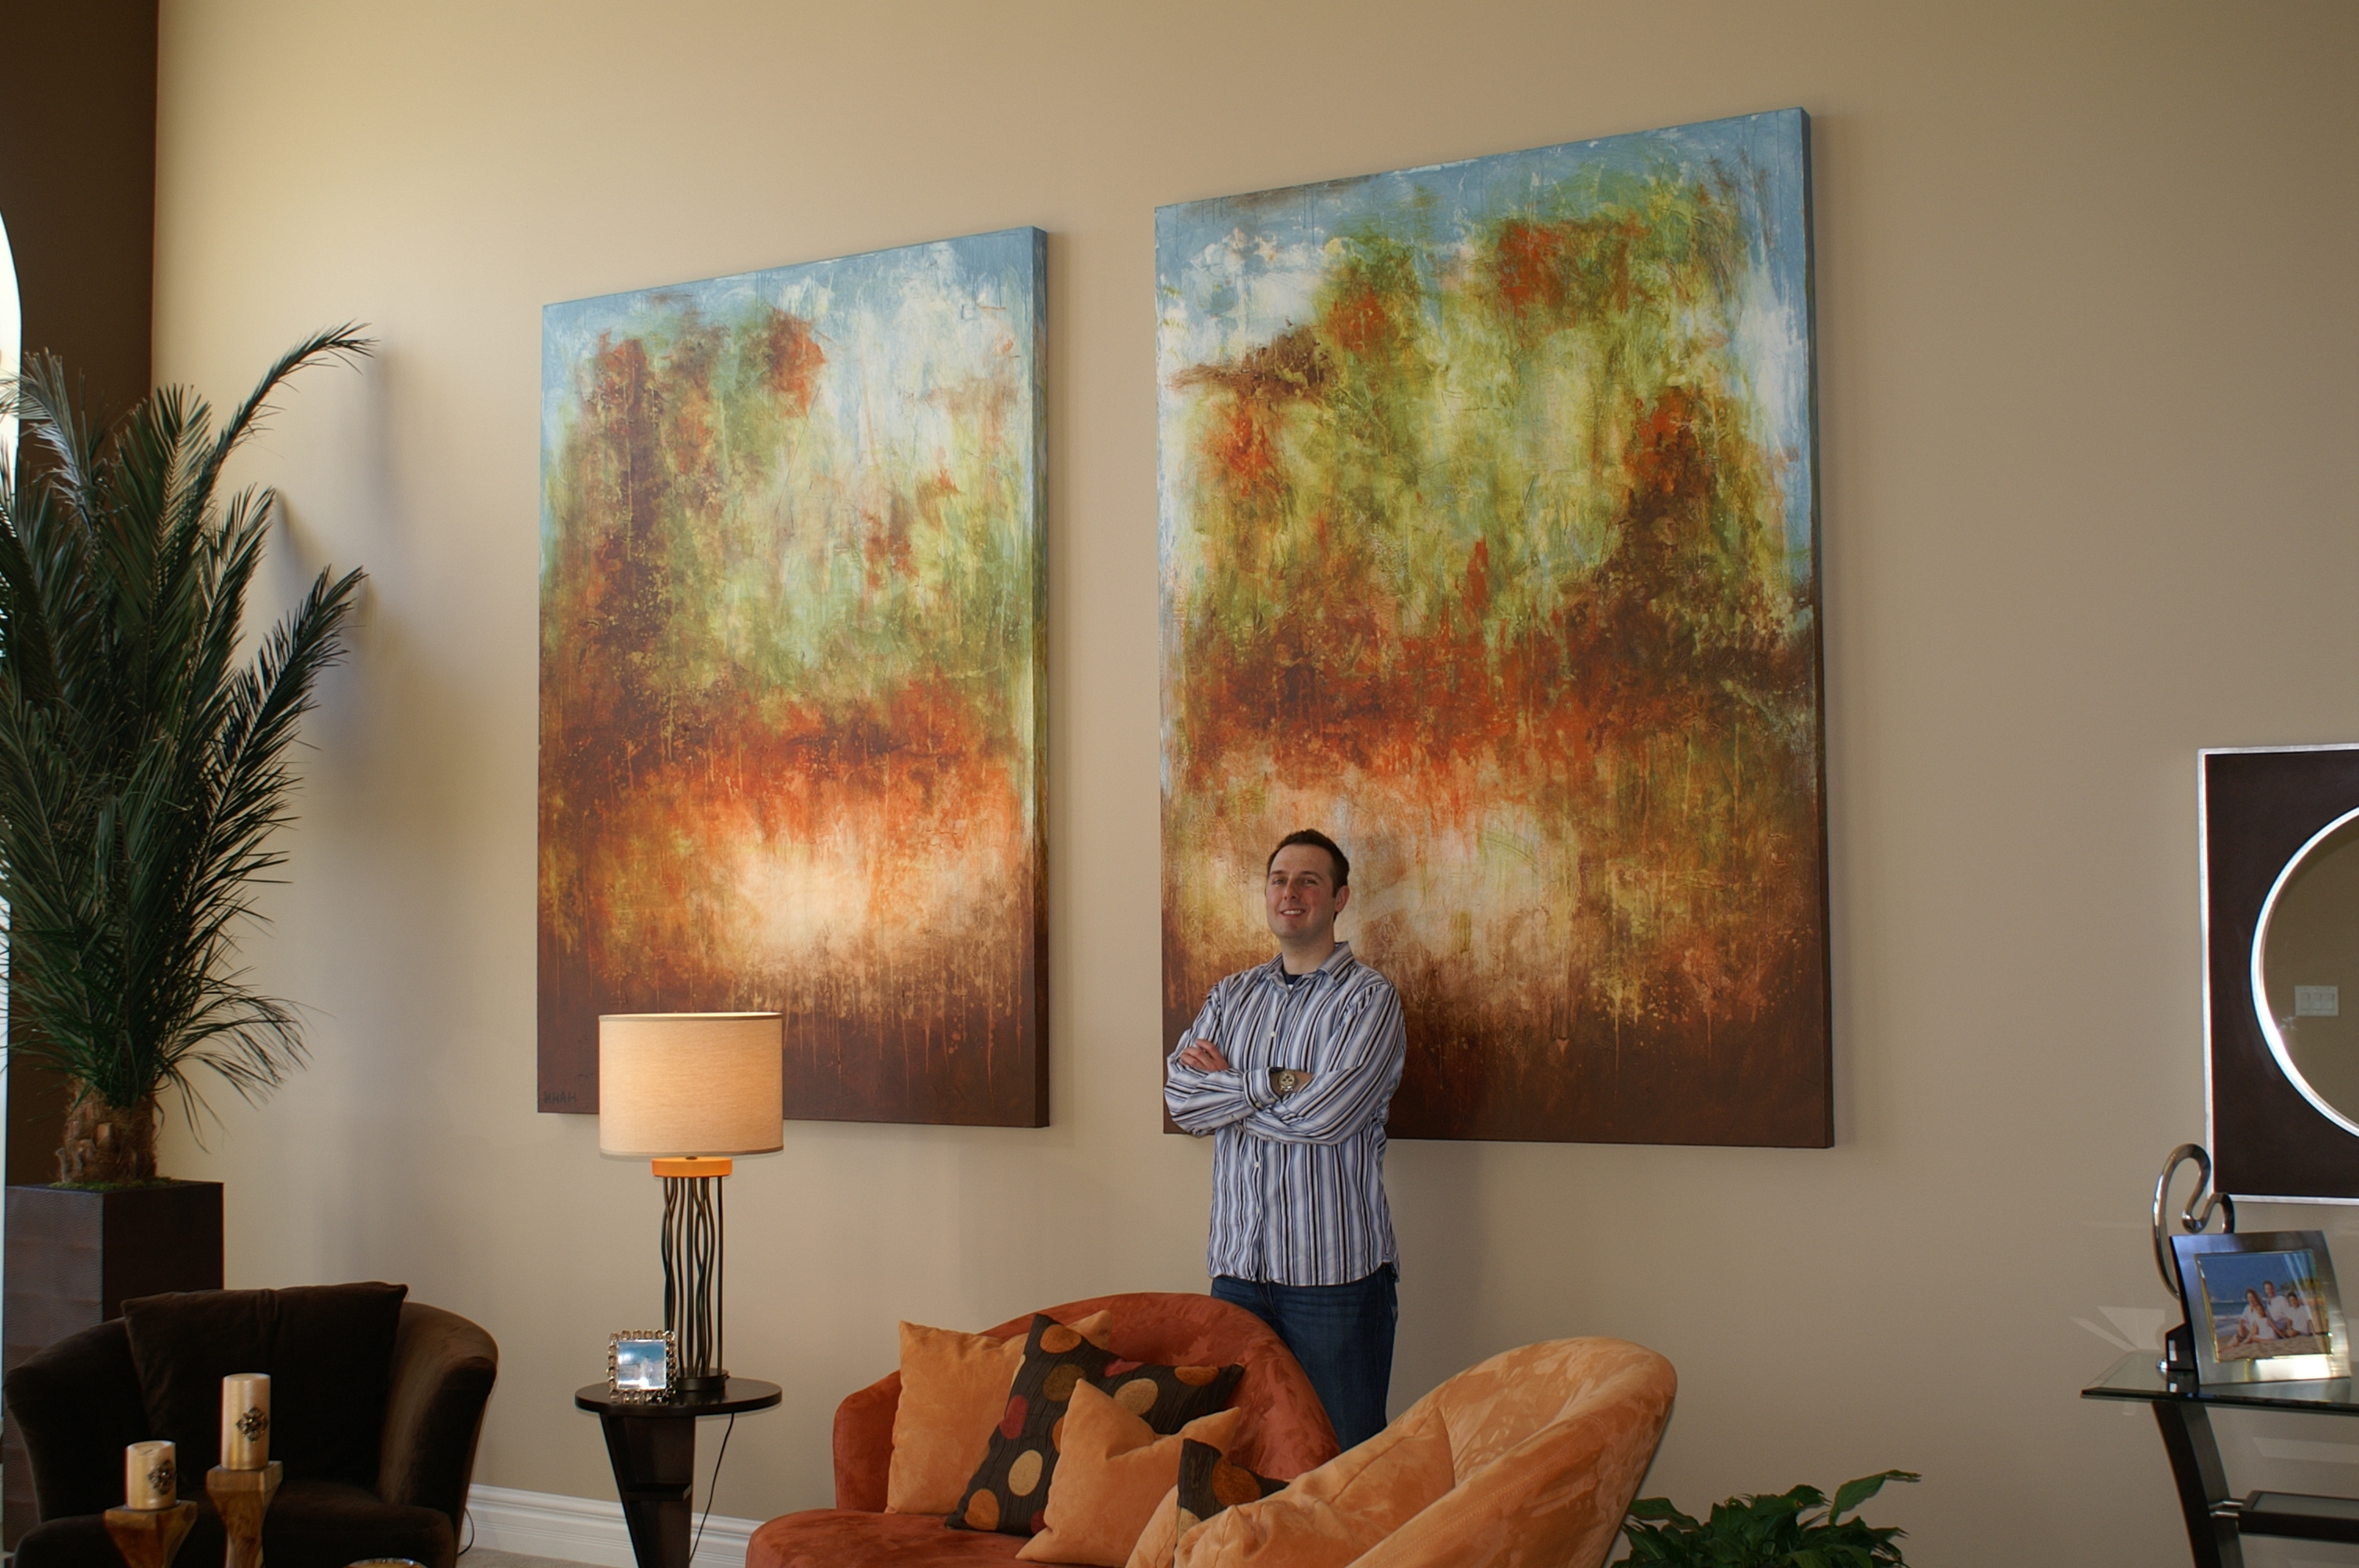 Oversized Commissioned Painting For A Two Story Great Room – Andy Pertaining To Most Current Huge Abstract Wall Art (View 15 of 15)